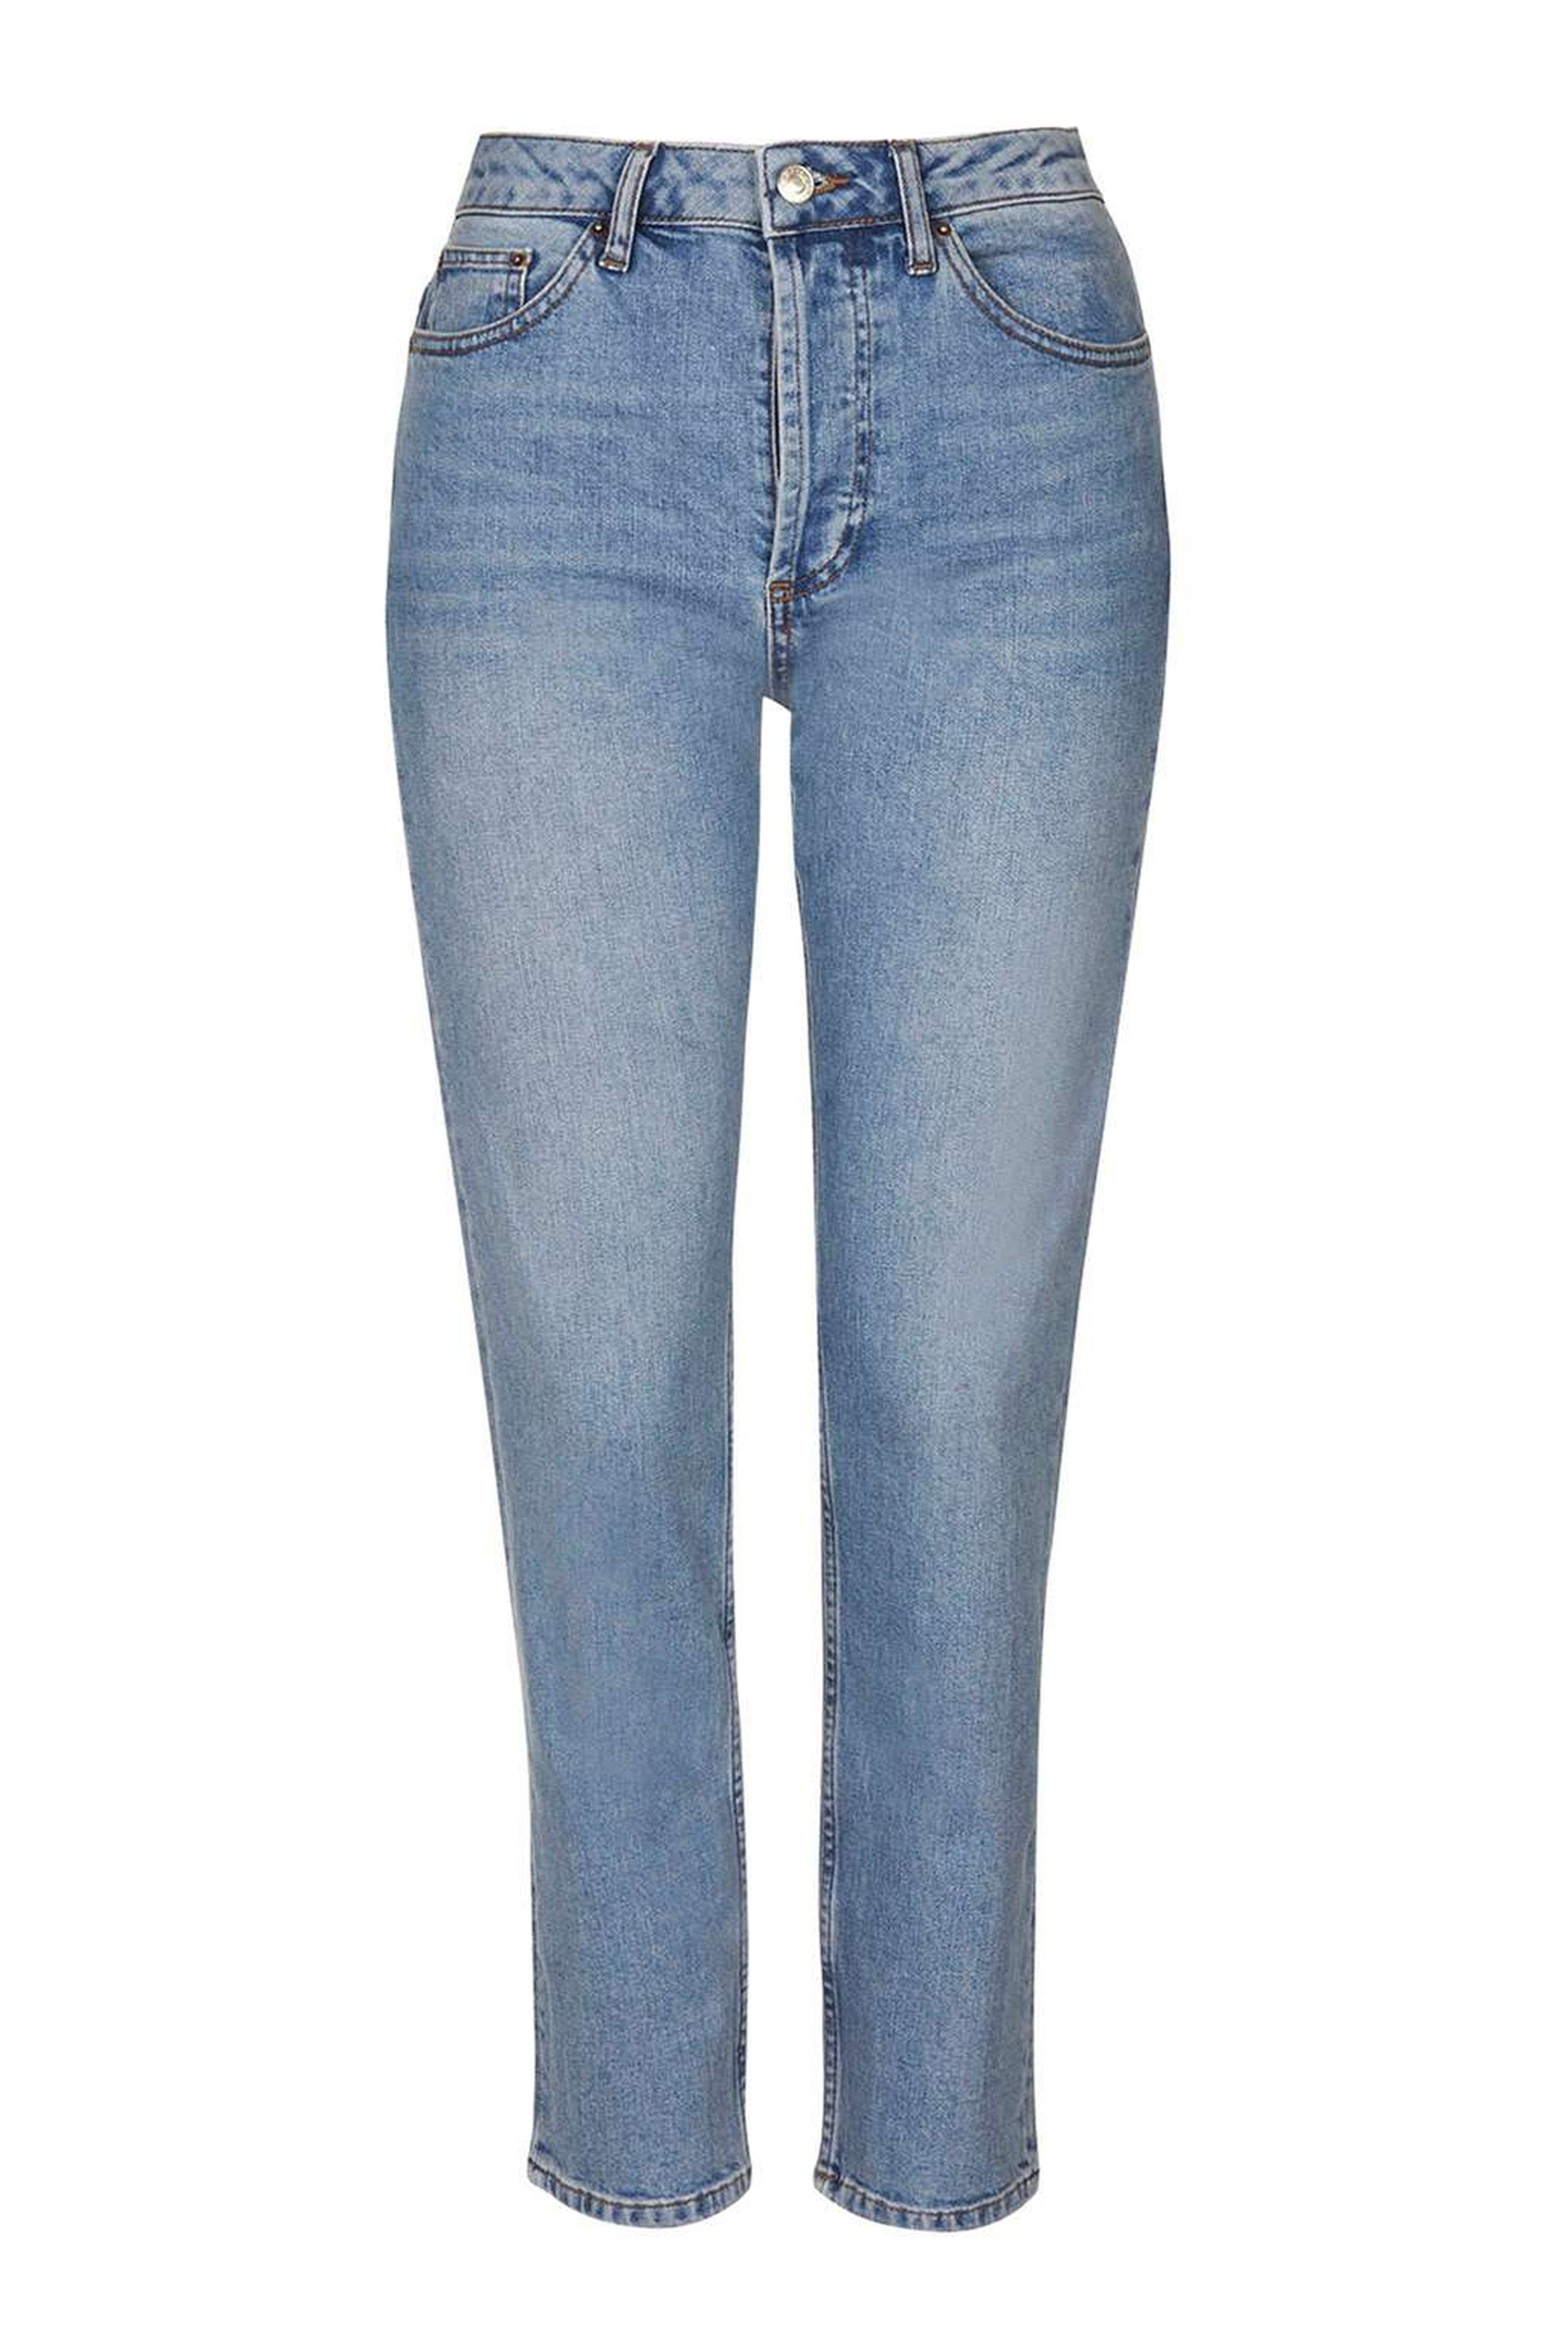 Womens Eve Classic Blue Vintage Boyfriend Jeans Wood Wood Cheap The Cheapest Clearance How Much Clearance Fast Delivery TQxu6vs